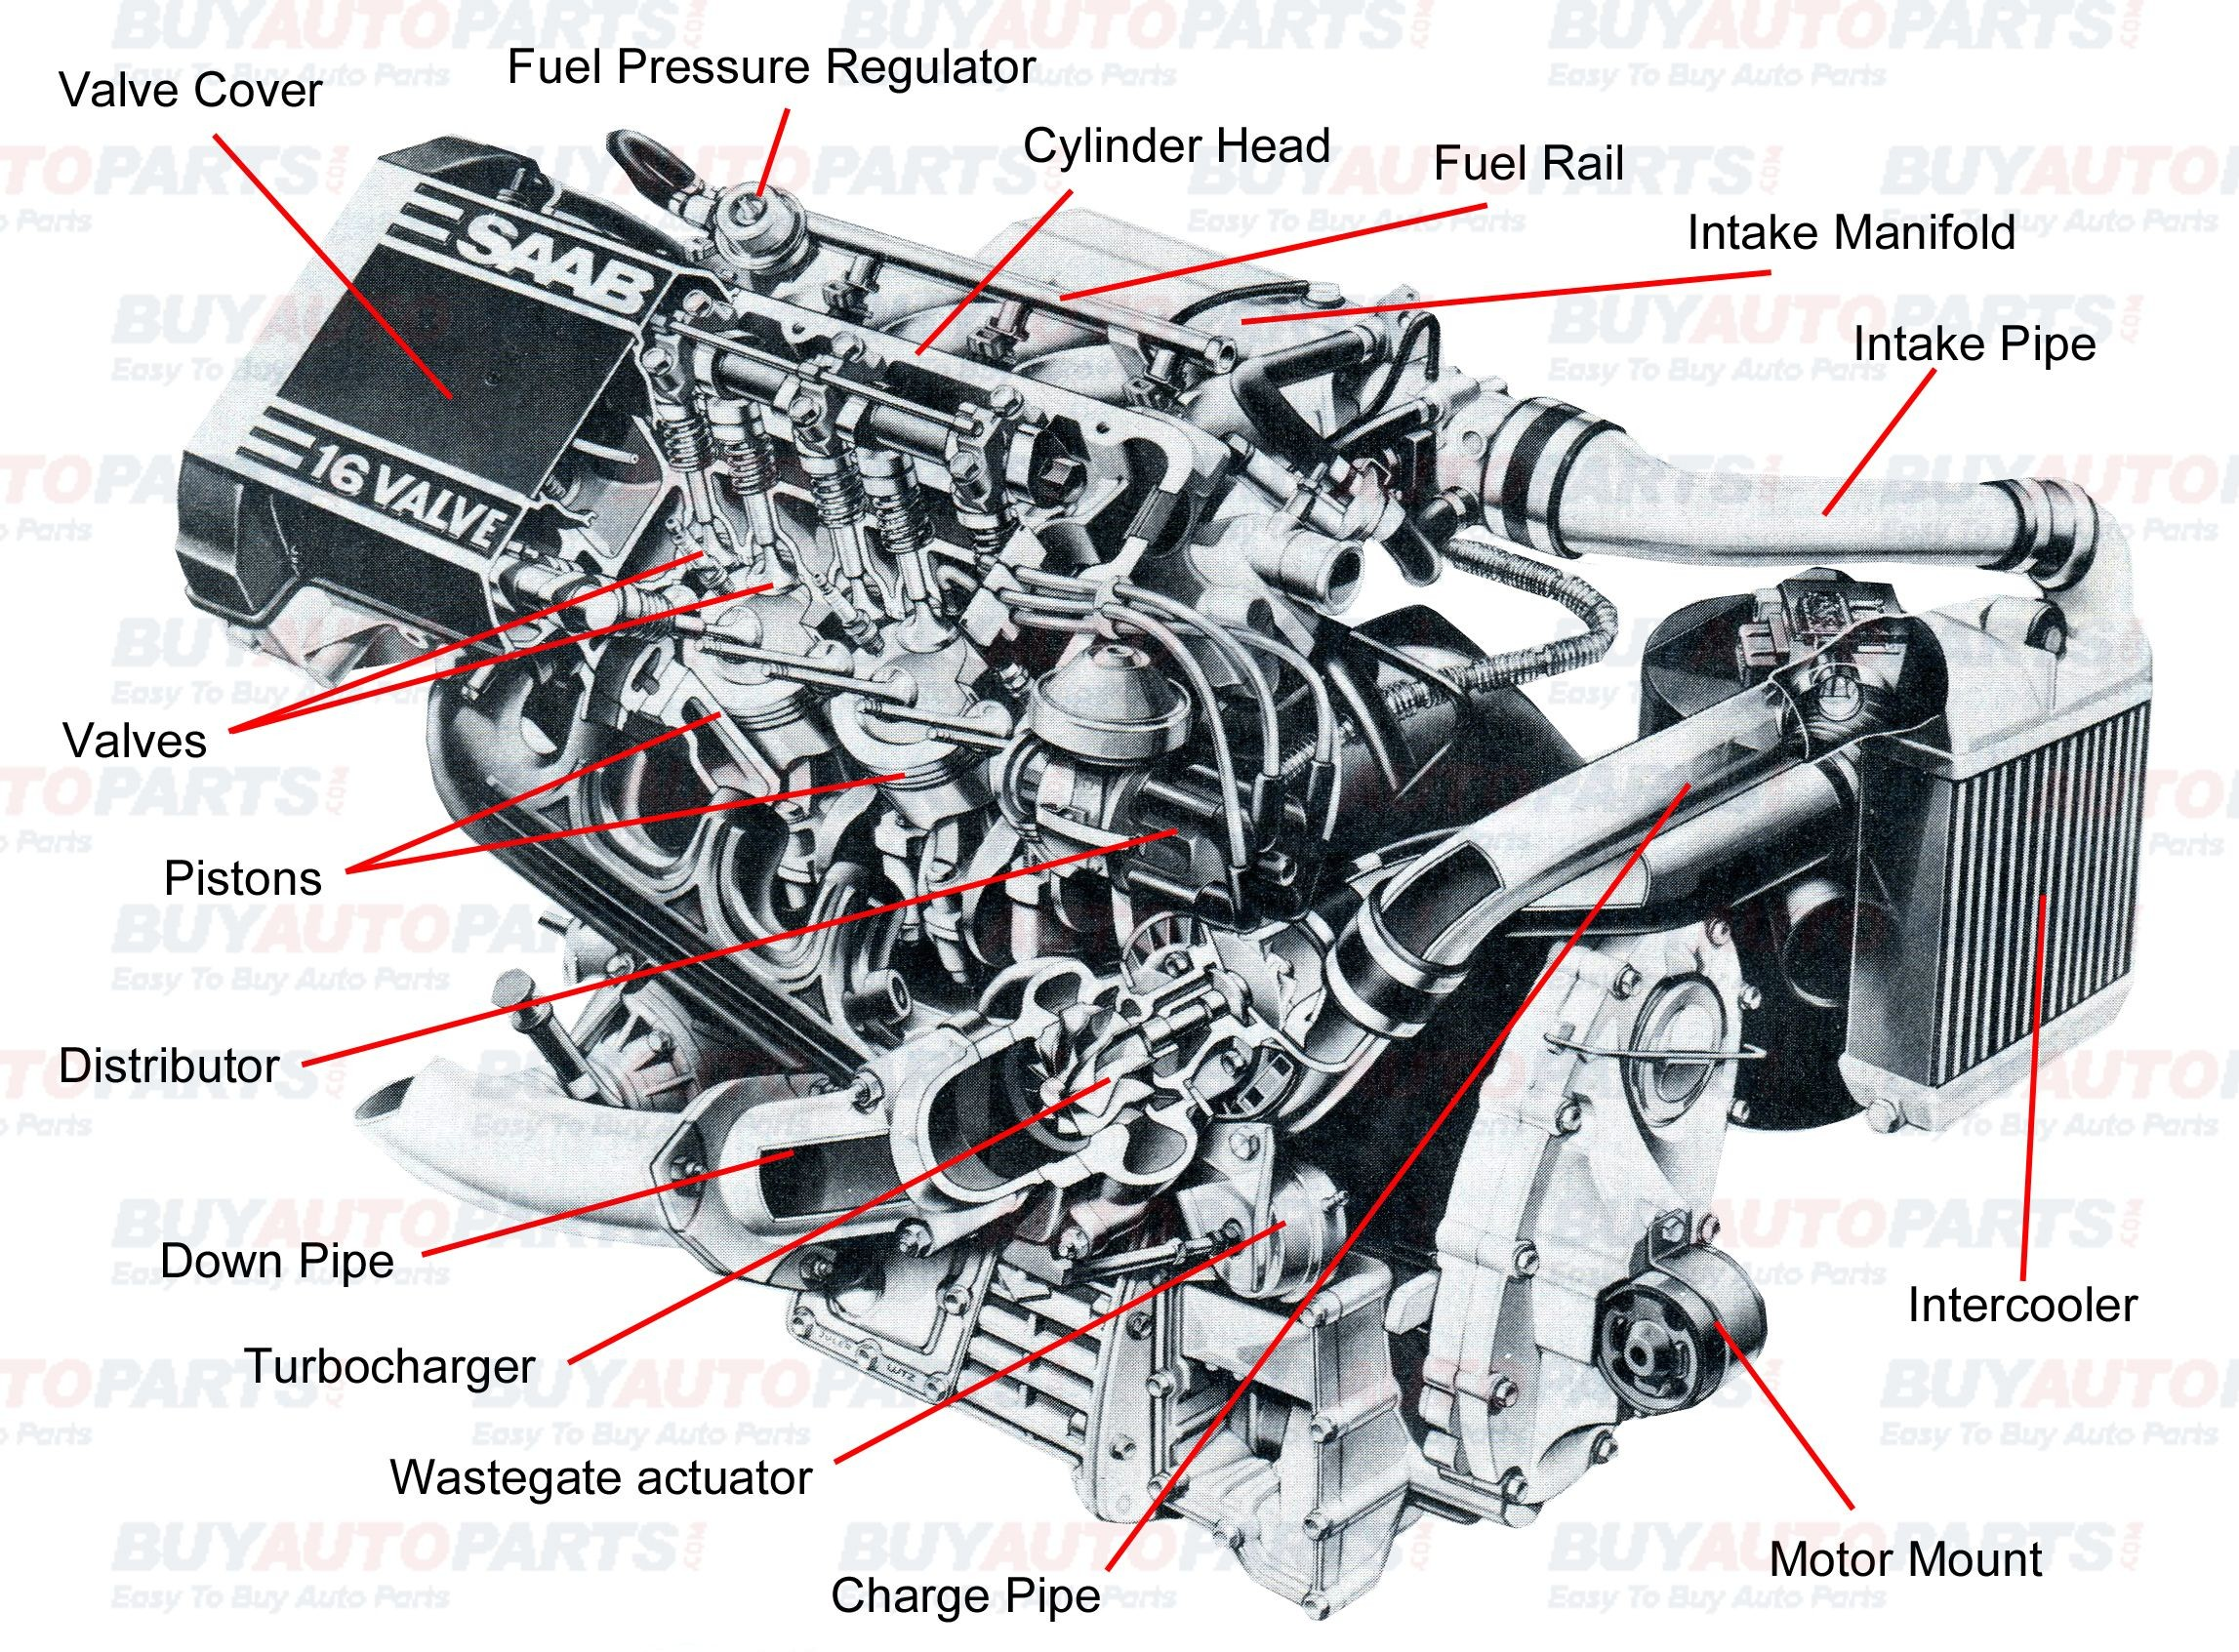 Internal Combustion Diagram All Internal Bustion Engines Have the Same Basic Ponents the Of Internal Combustion Diagram